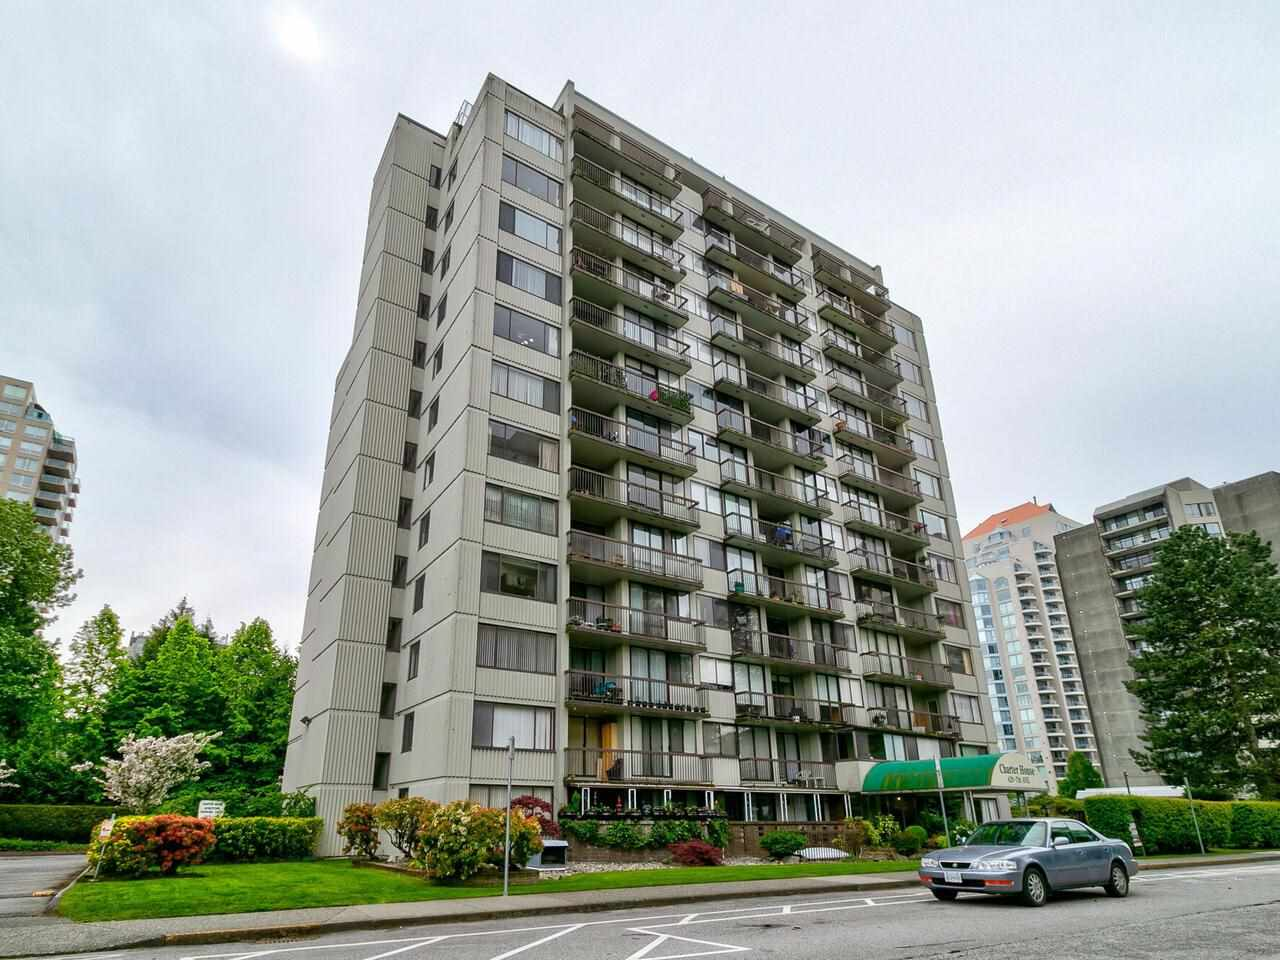 603 620 SEVENTH AVENUE - Uptown NW Apartment/Condo for sale, 2 Bedrooms (R2578219)